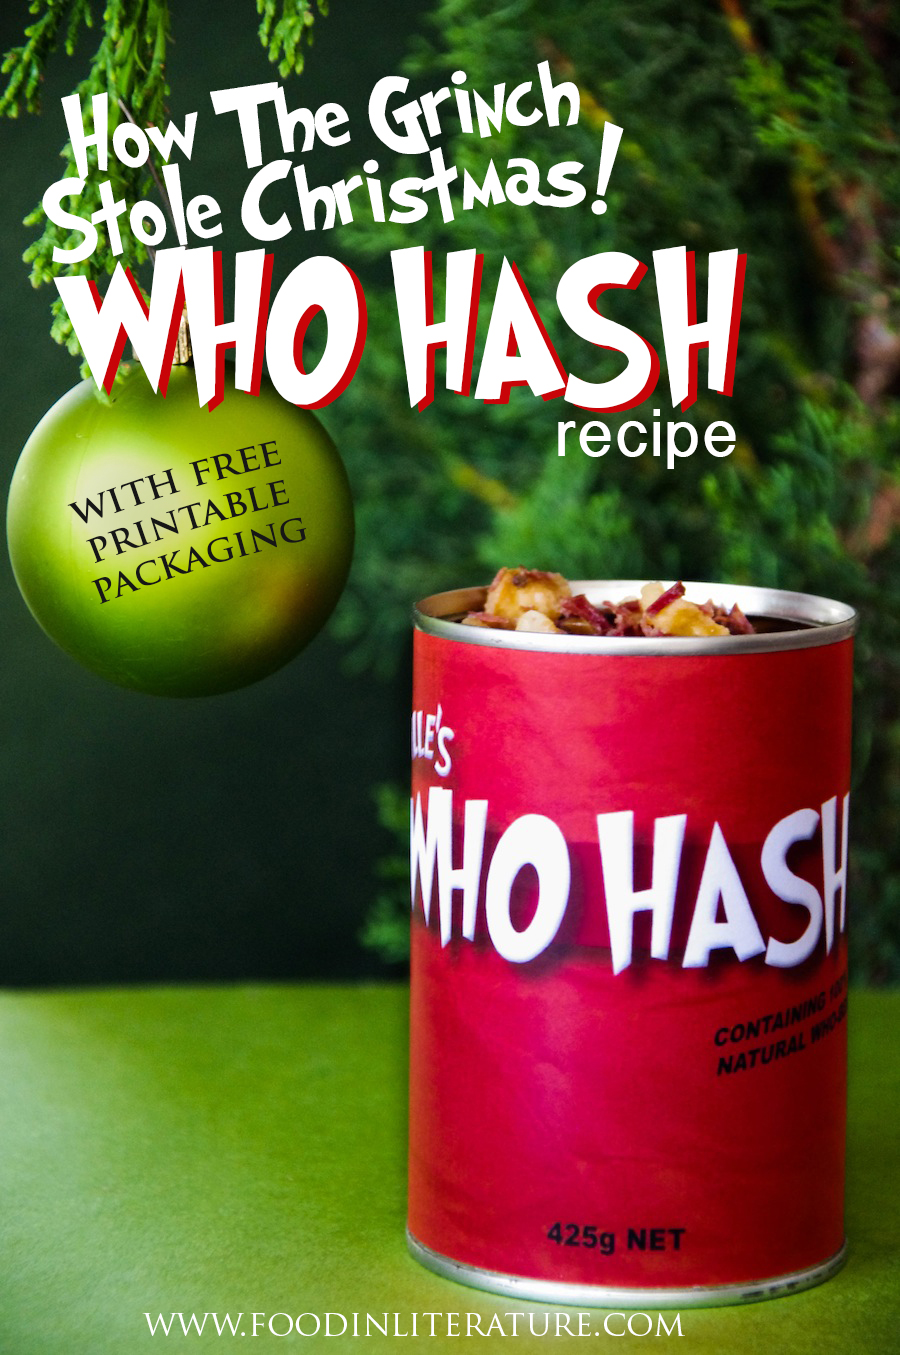 Theme up your dinner in December for your family, and make this quick and easy Who Hash recipe (it even uses leftovers!). With free printable packaging, your family will feel like they're in Whoville.